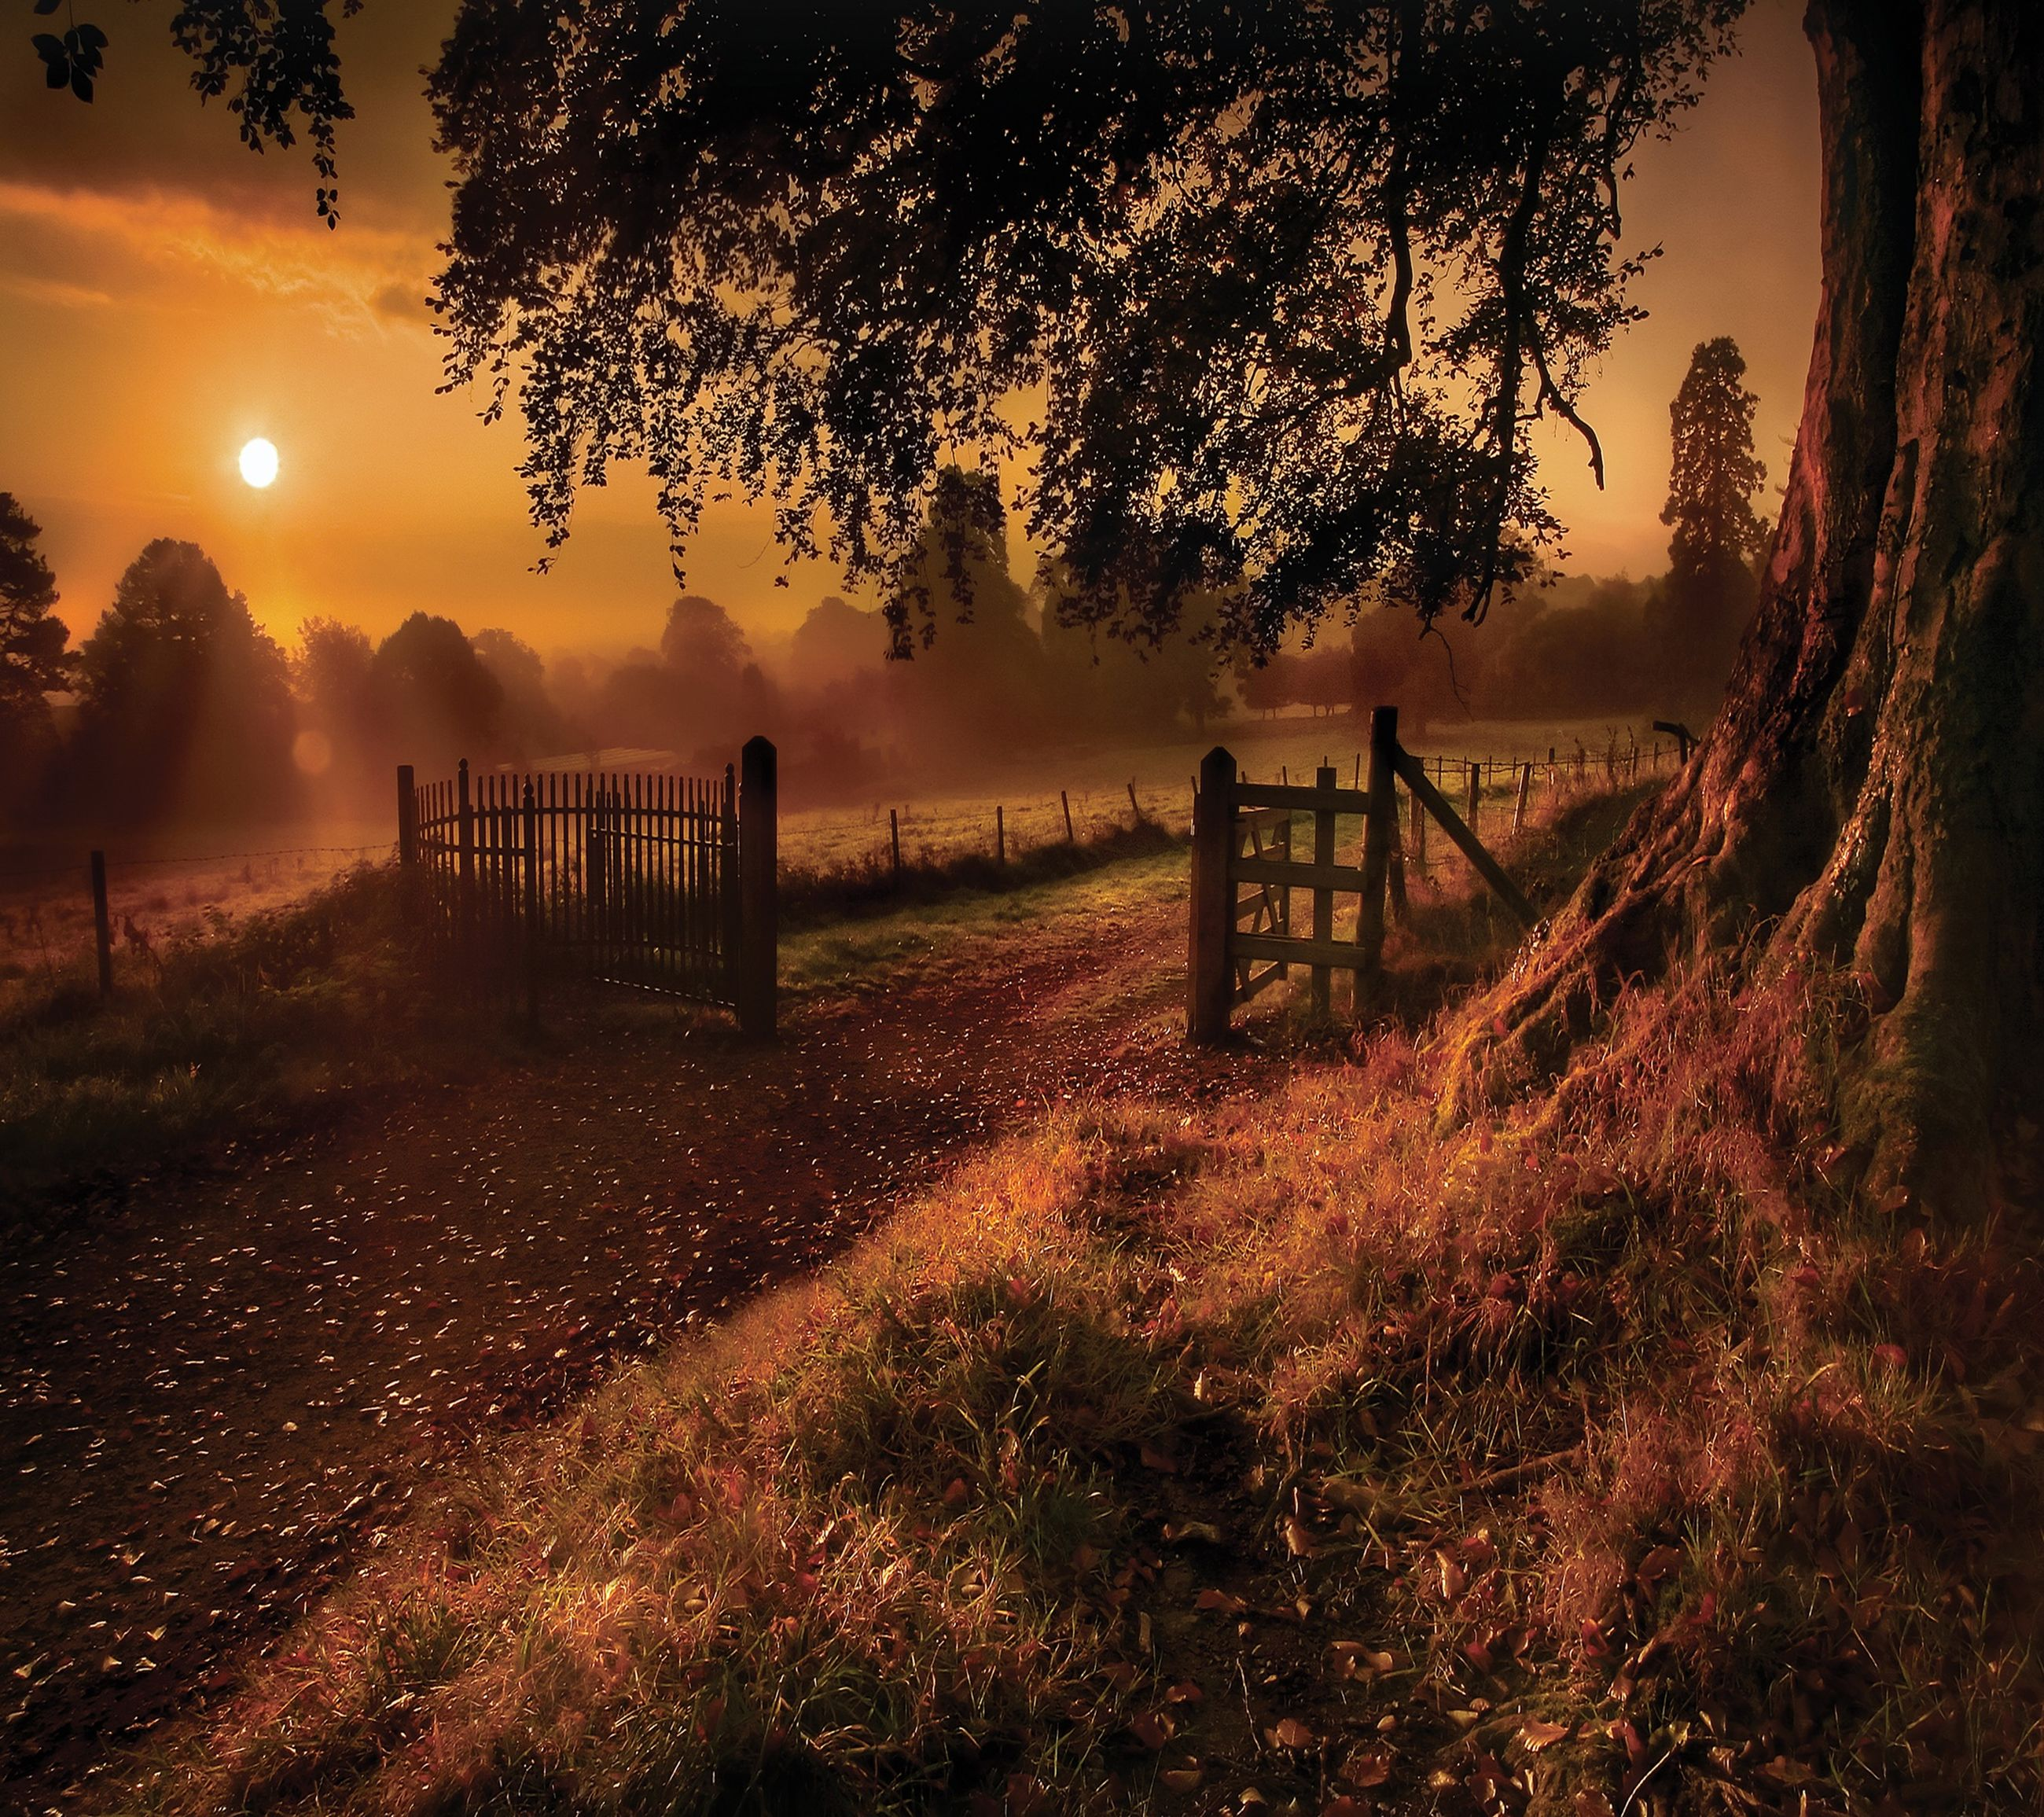 sunset, fence, tree, nature, silhouette, sky, outdoors, beauty in nature, no people, tranquility, fog, landscape, sun